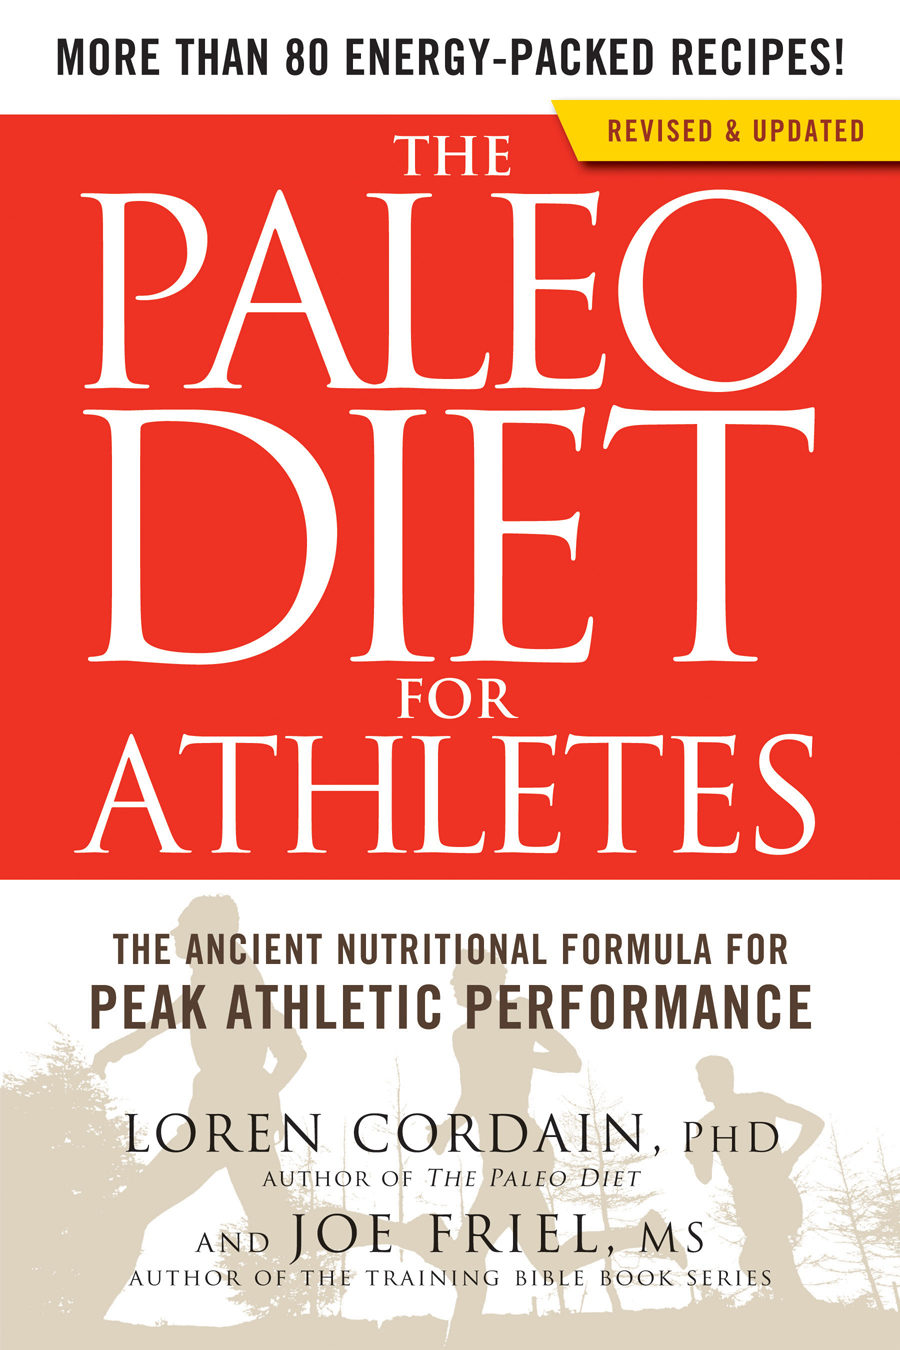 The Paleo Diet for Athletes By: Loren Cordain,Joe Friel